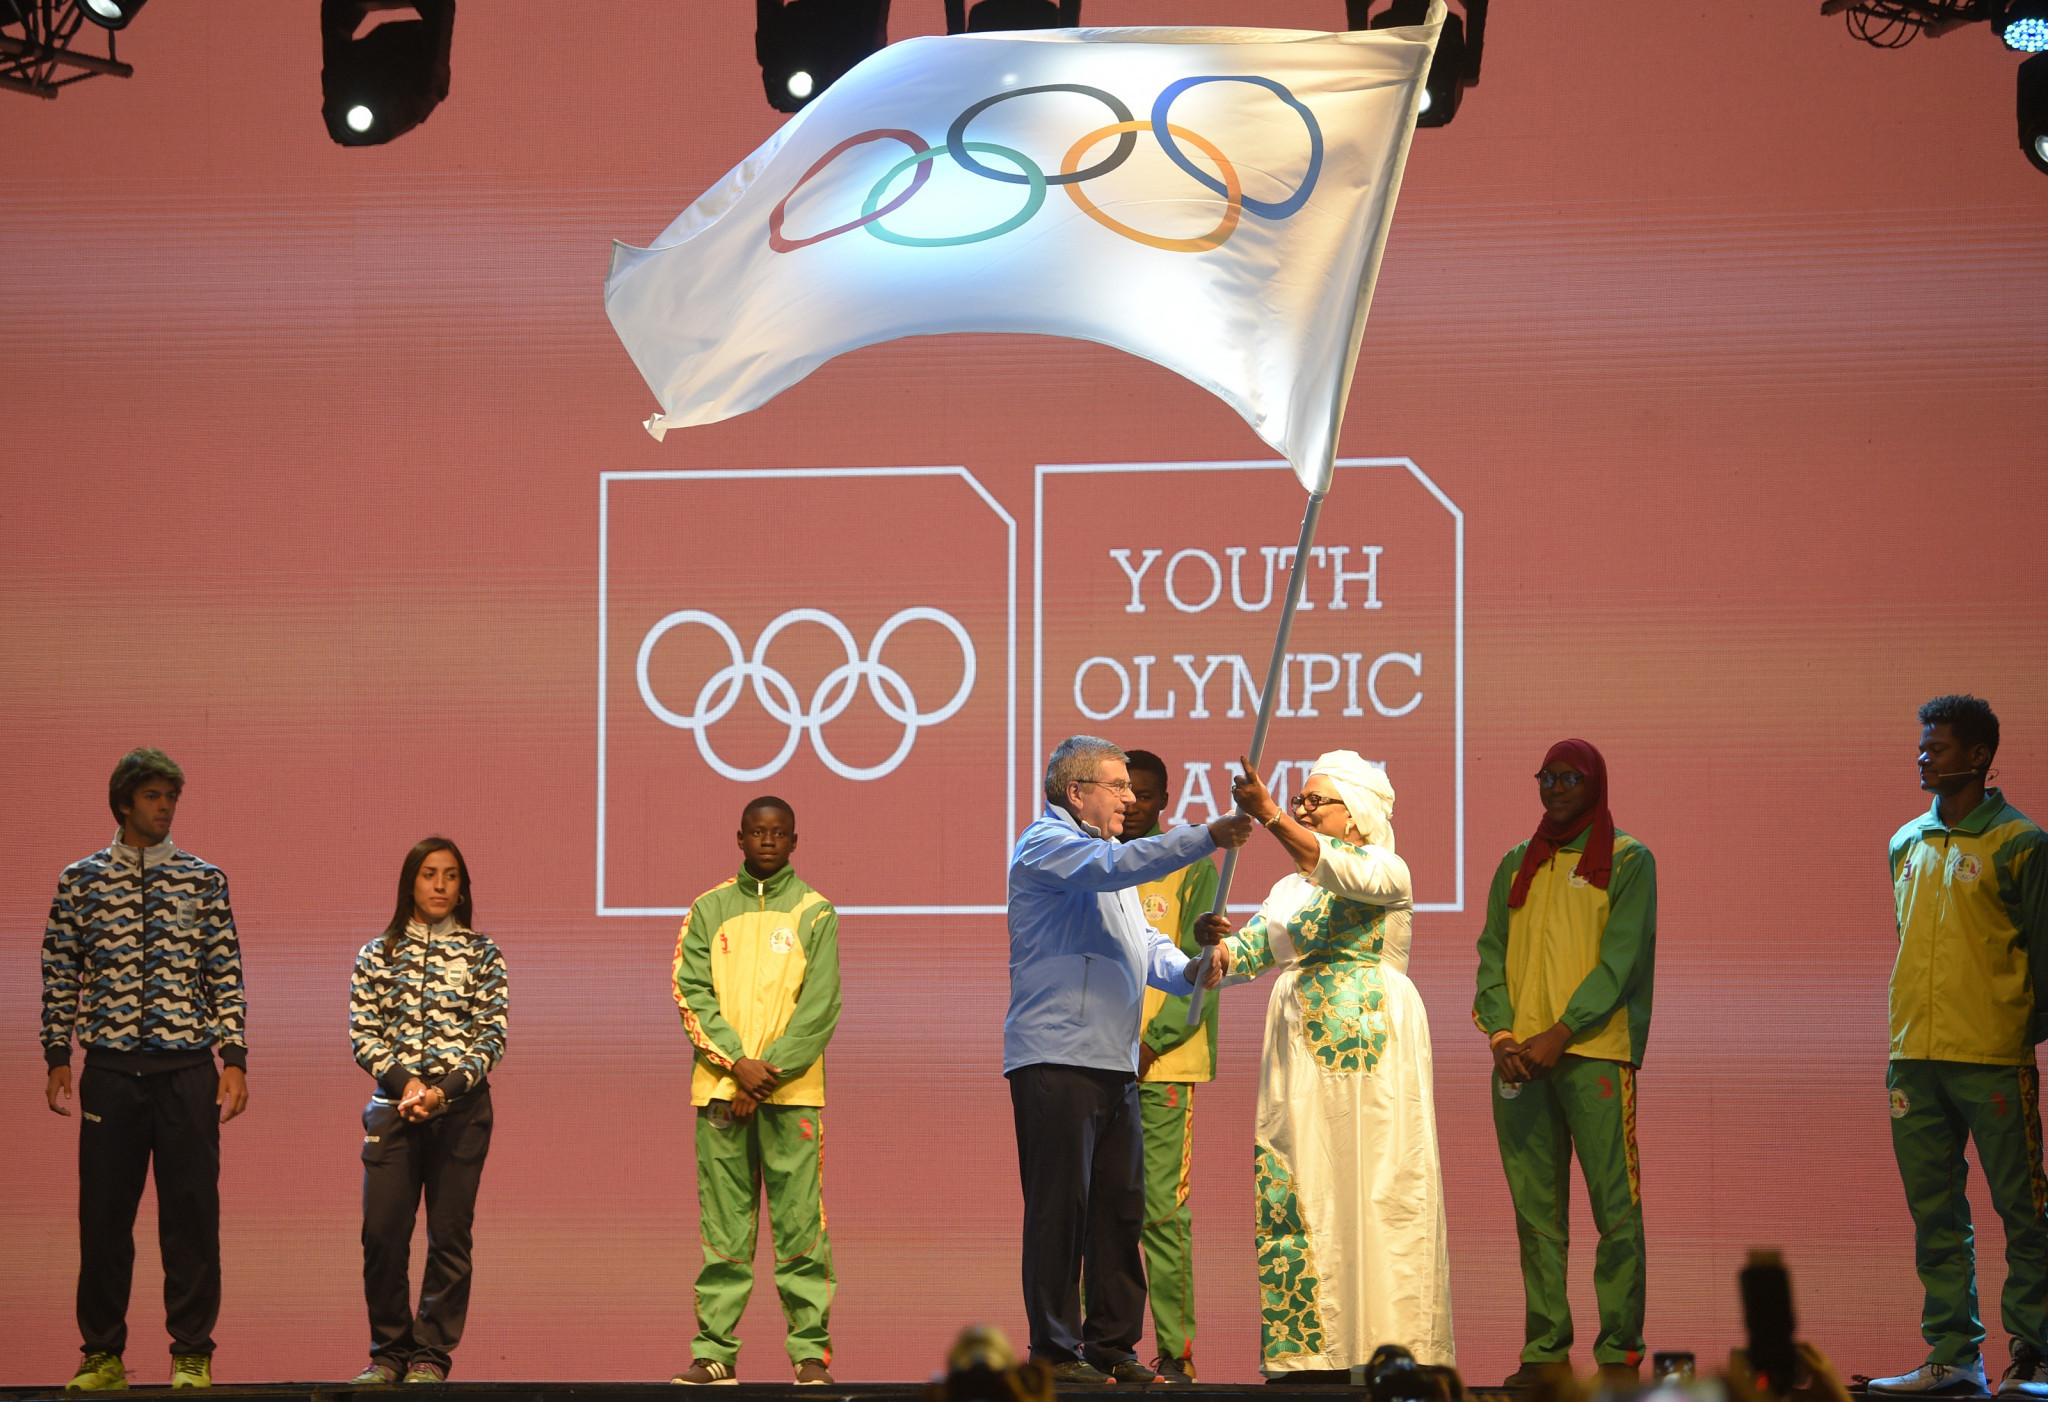 Dakar 2026 highlights Youth Olympic Games edition plan as key to preparations